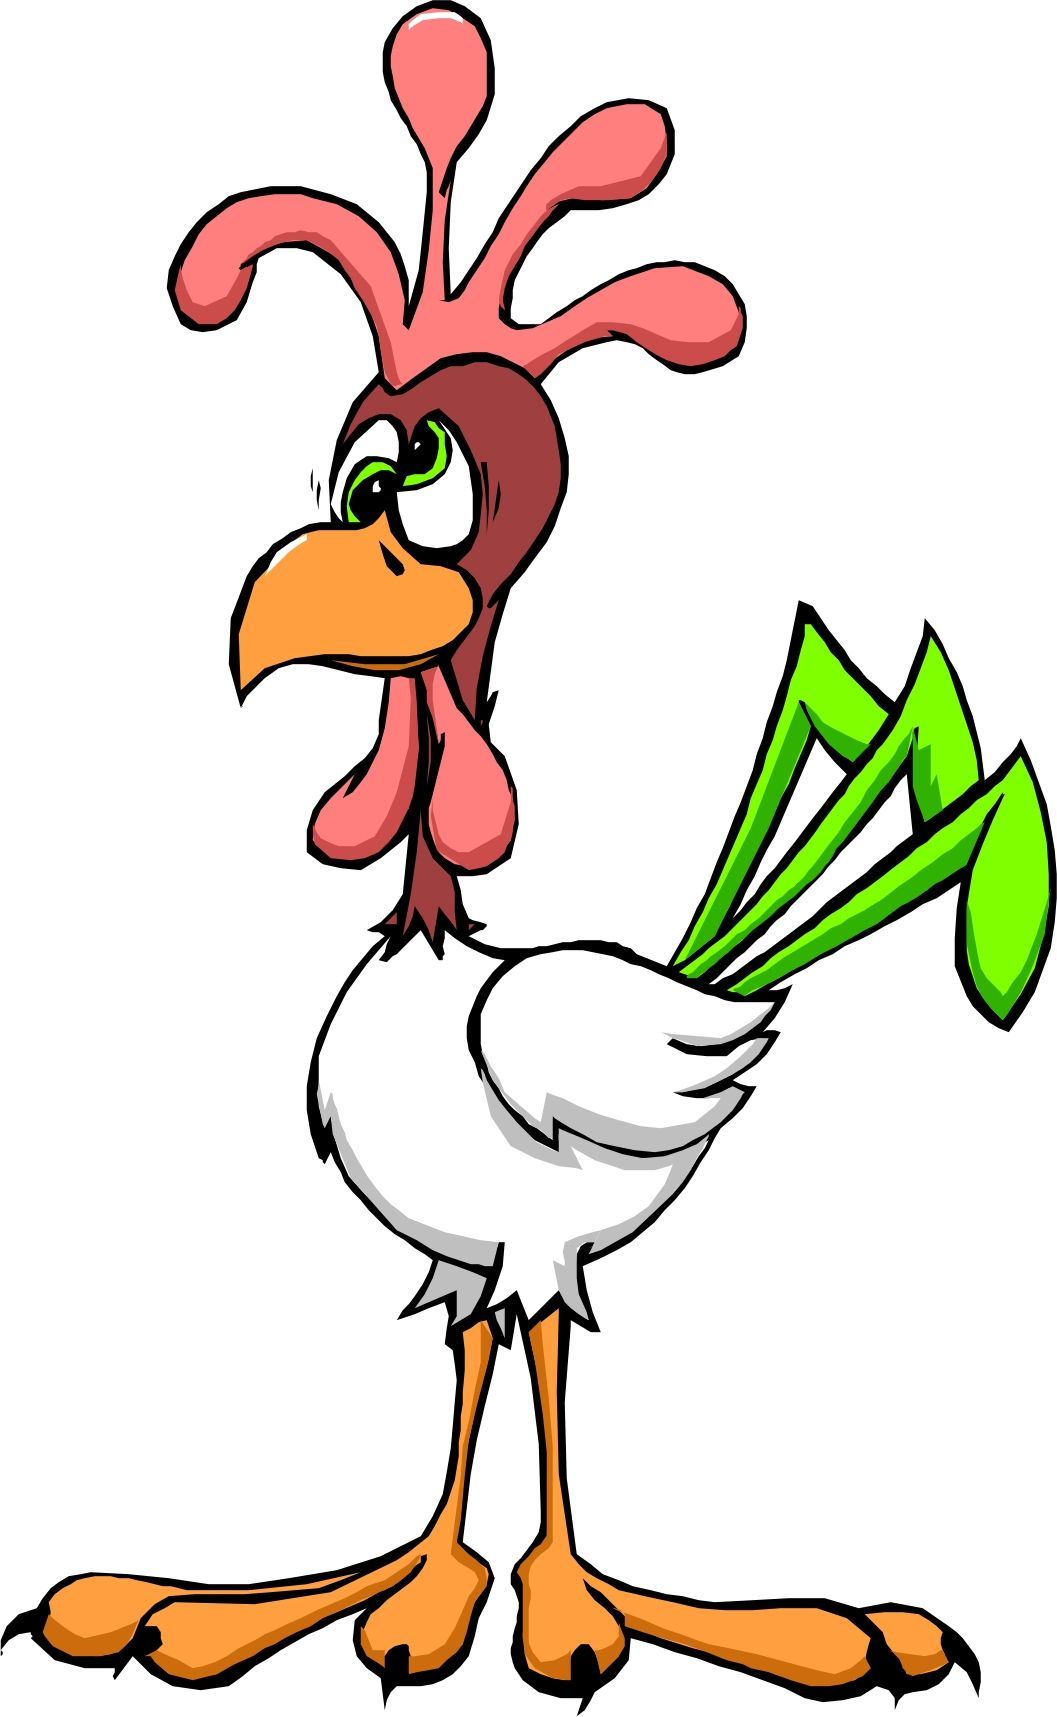 cartoon chickens clipart best backgrounds clipart images etc rh pinterest com clipart cartoon house clipart cartoon noses